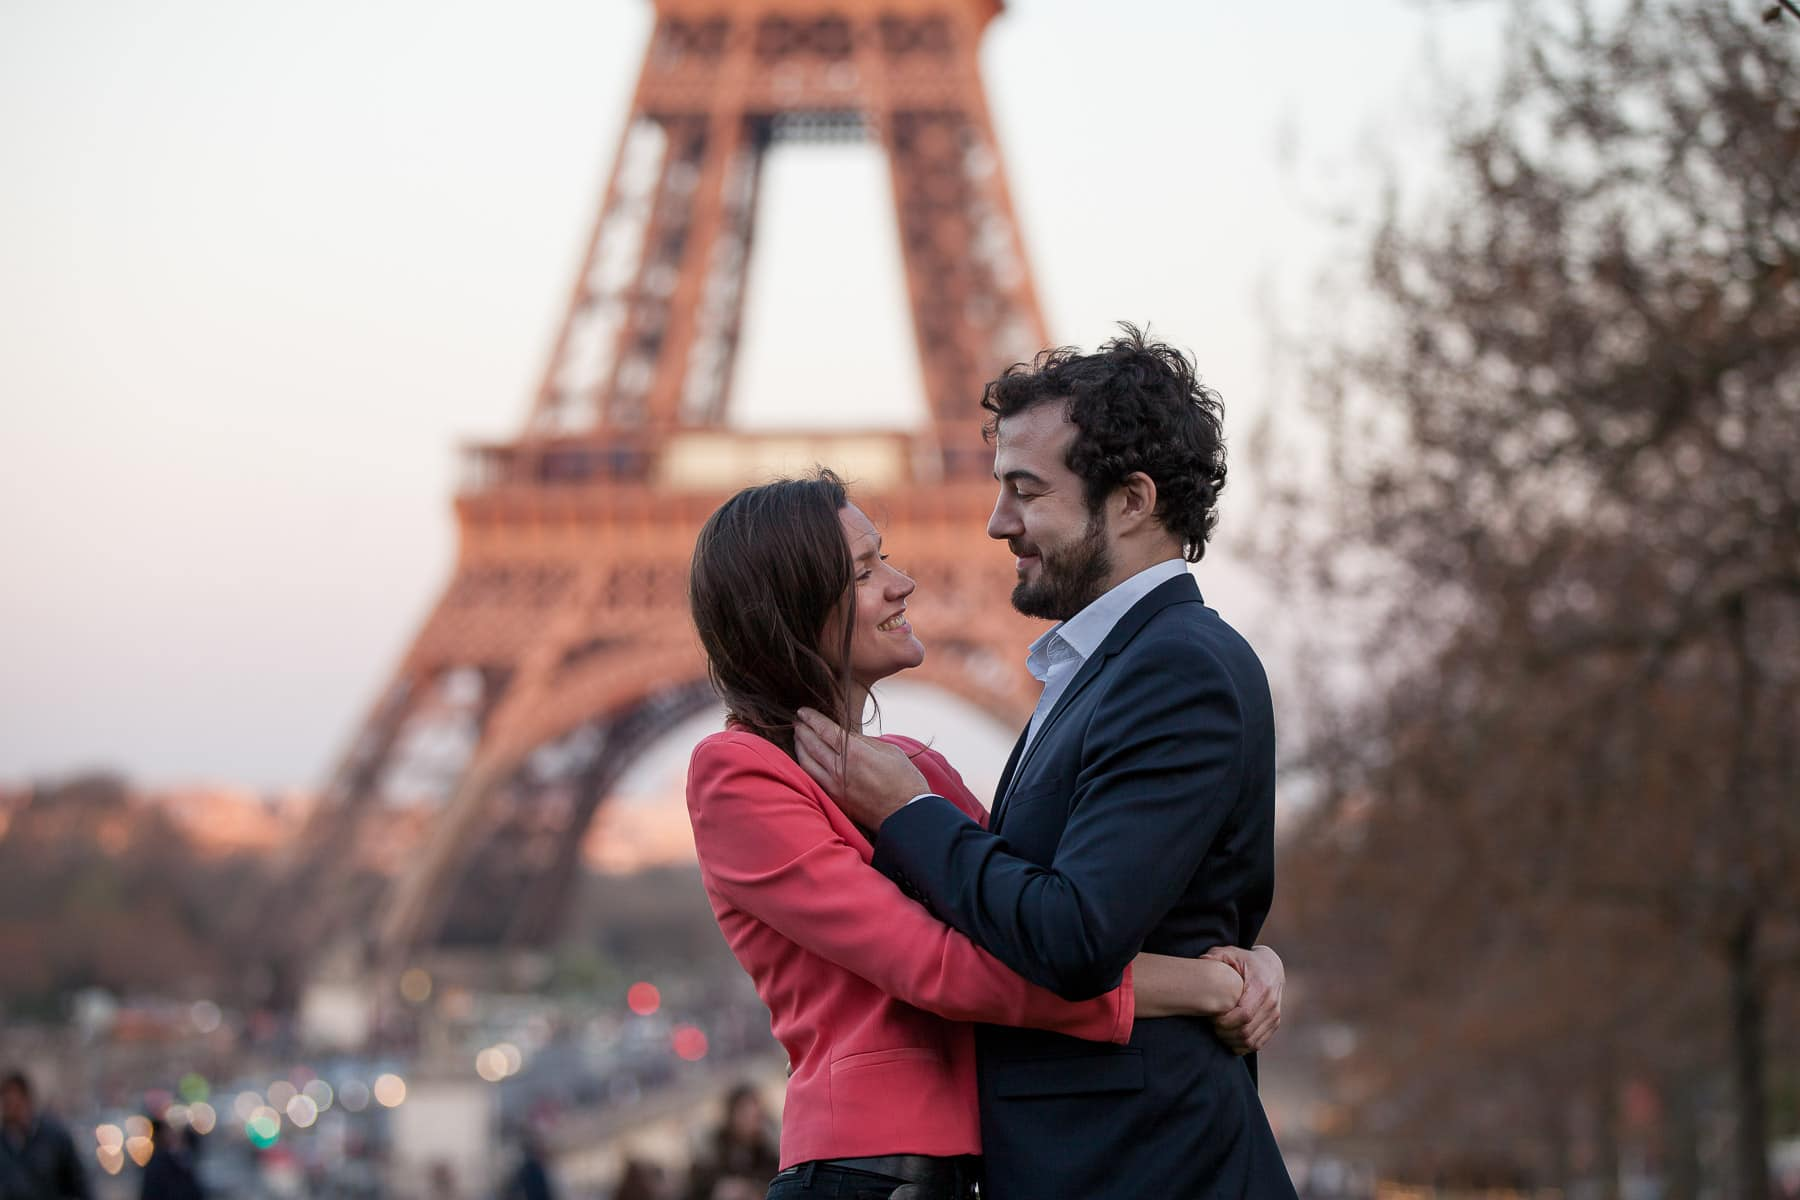 Couple embrace in front of Eiffel Tower